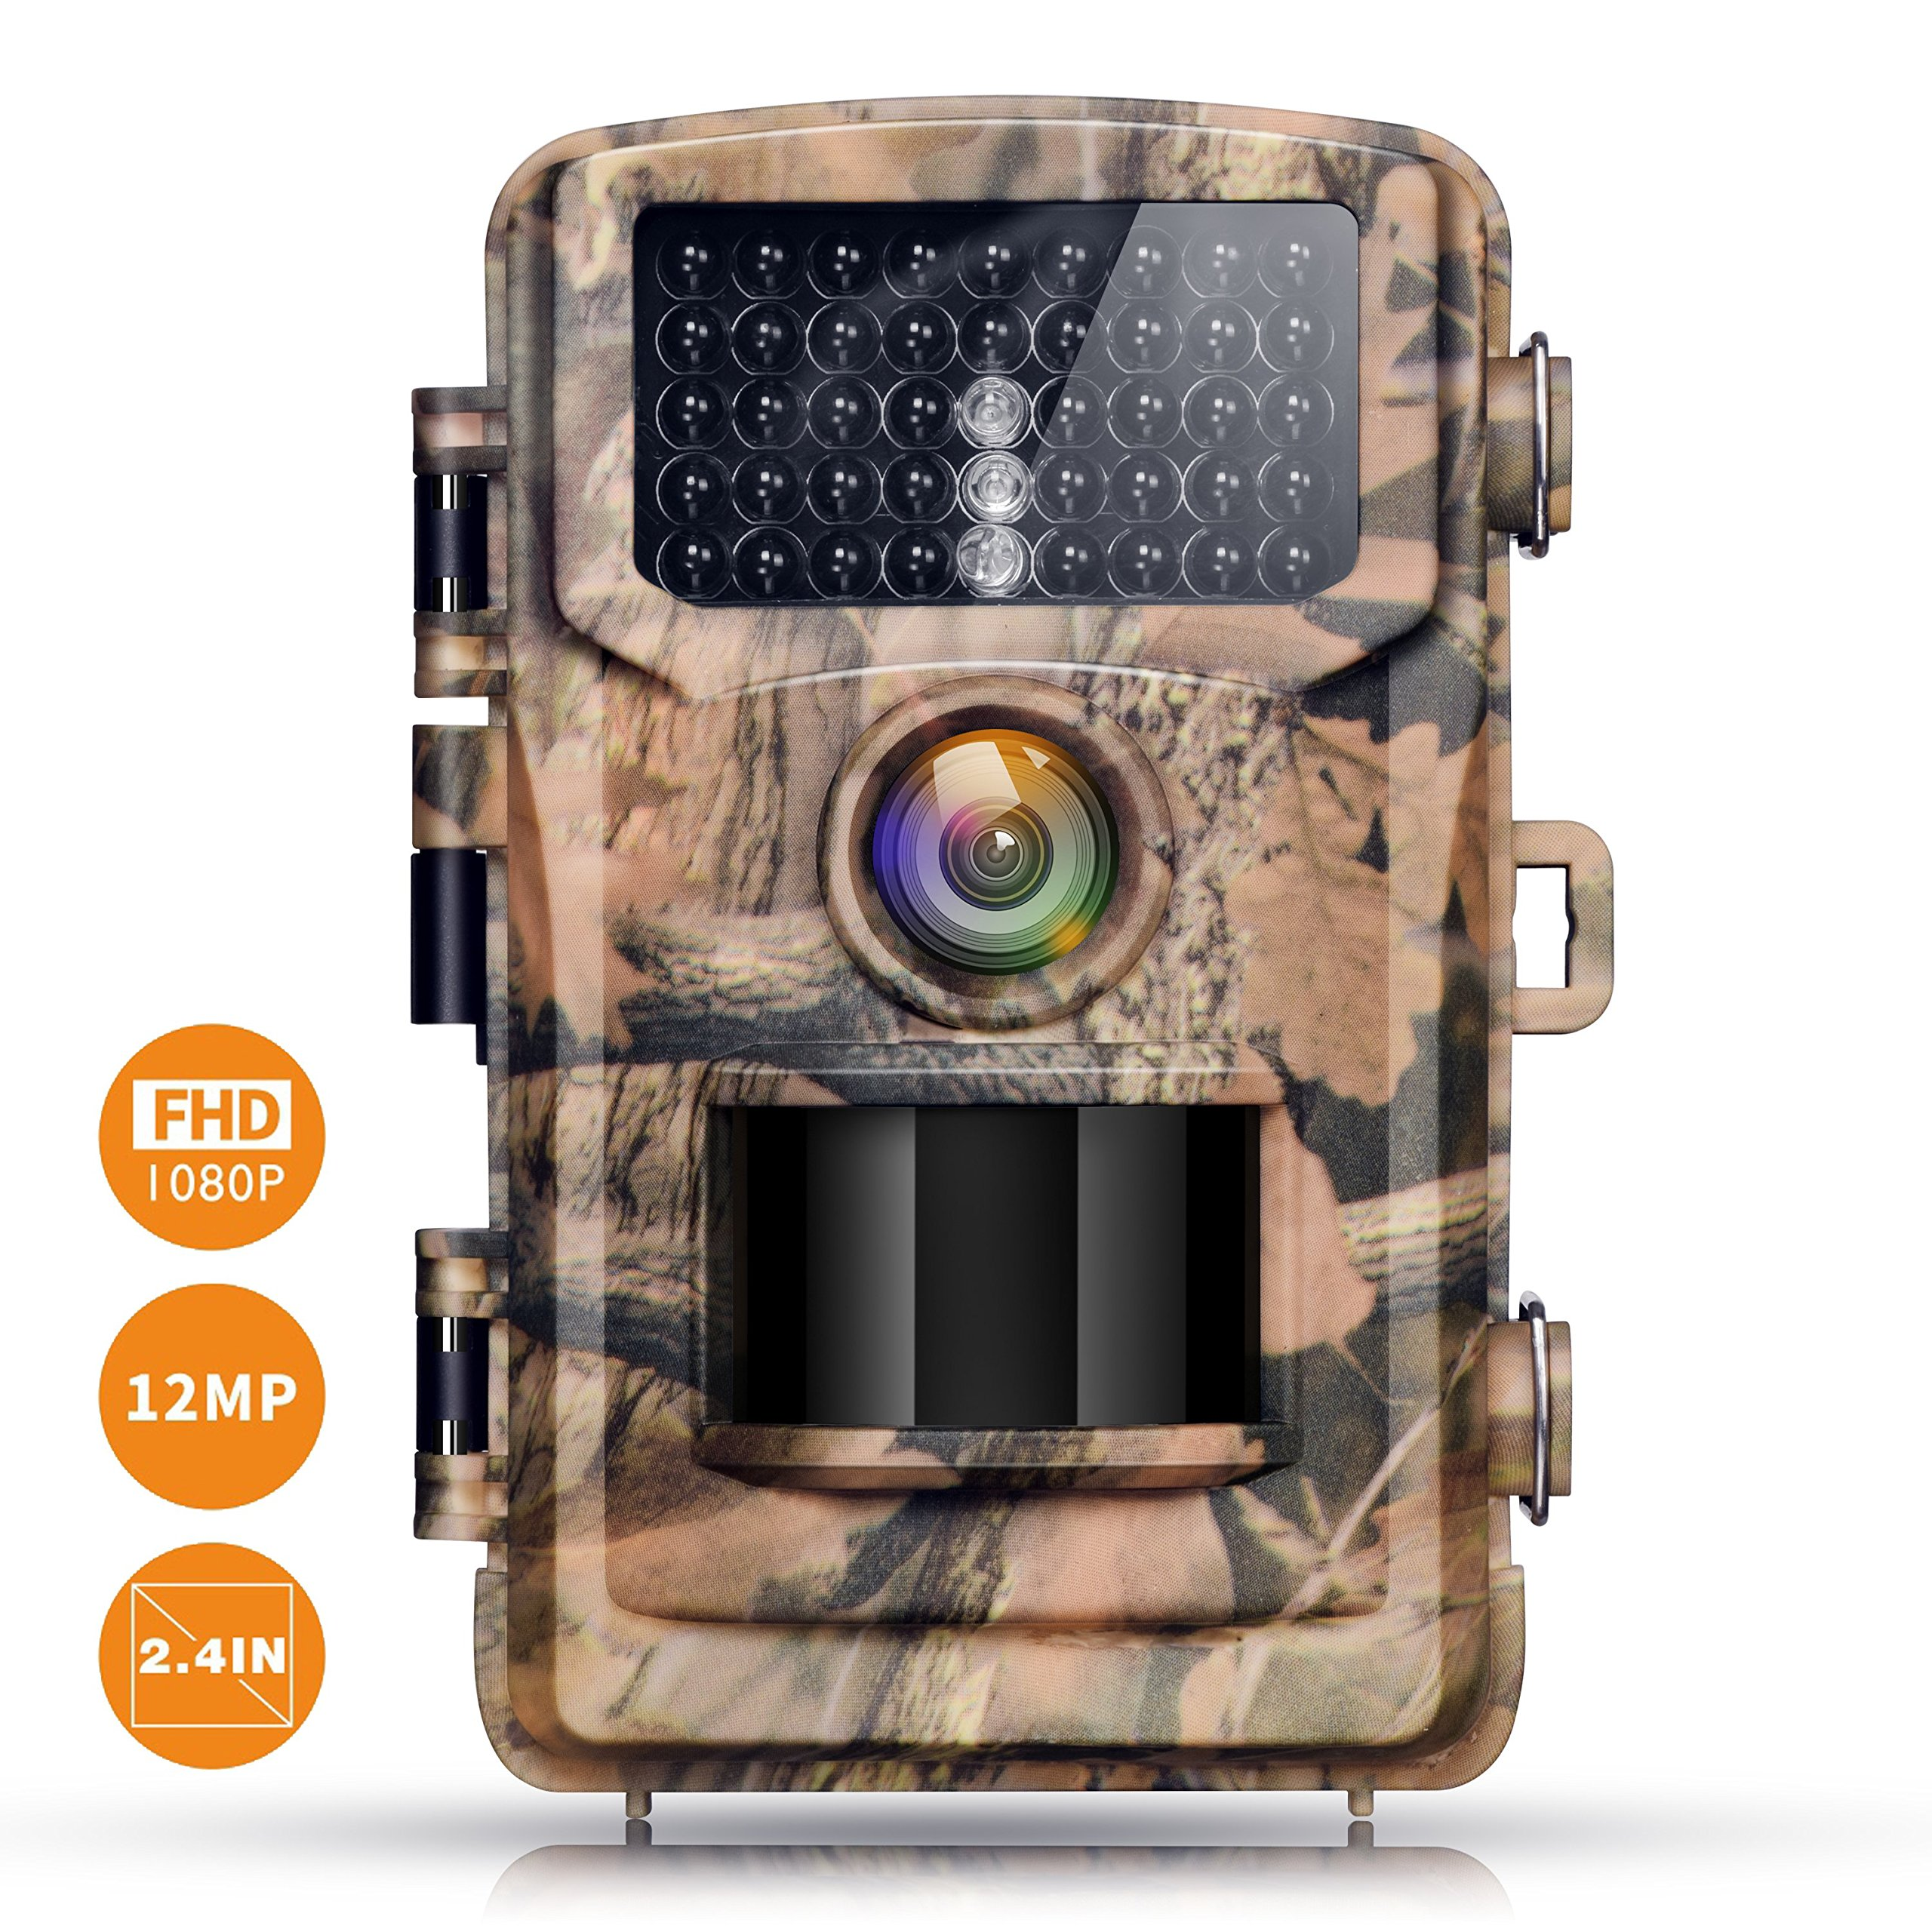 Campark Trail Camera 12MP 1080P 2.4'' LCD Game Camera Motion Activated Wildlife Hunting Cam IR LEDs Night Vision up to 75ft/23m IP56 Waterproof (New Version)